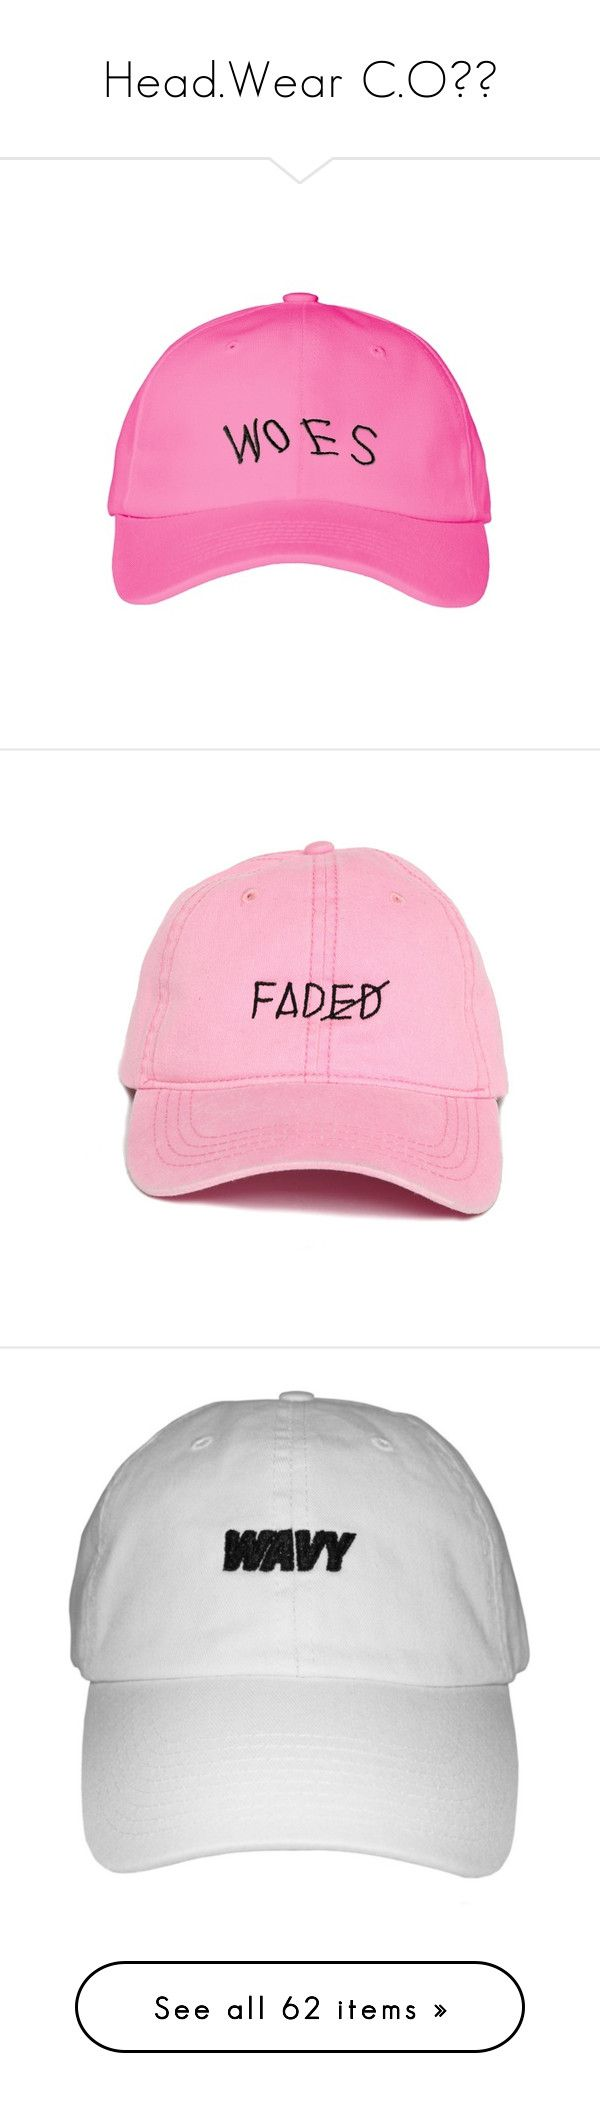 """""""Head.Wear C.O"""" by dashaye-2013 ❤ liked on Polyvore featuring accessories, hats, caps hats, cotton cap, visor hats, sun visor hat, summer cap, navy hat, logo hats and embroidered hats"""